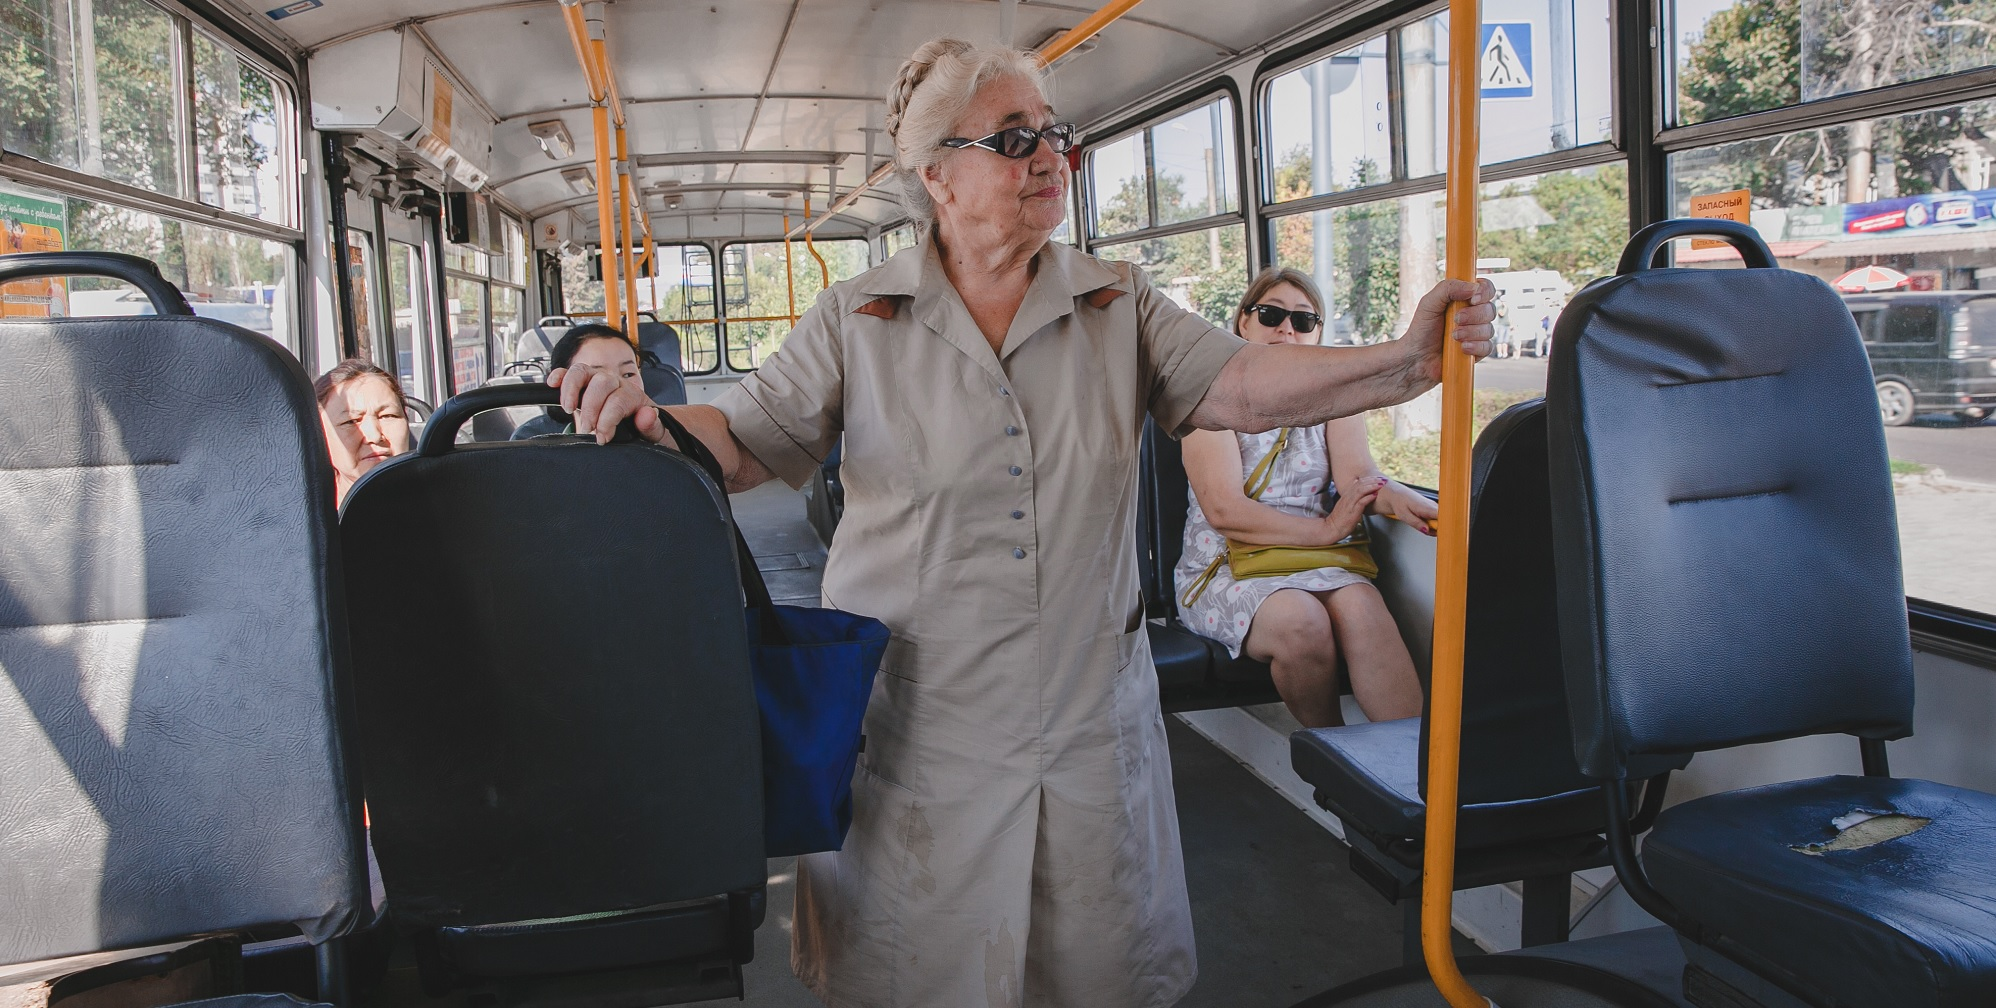 Clipart of old people on bus image library Make cities safe and inclusive for older people, says new HelpAge ... image library